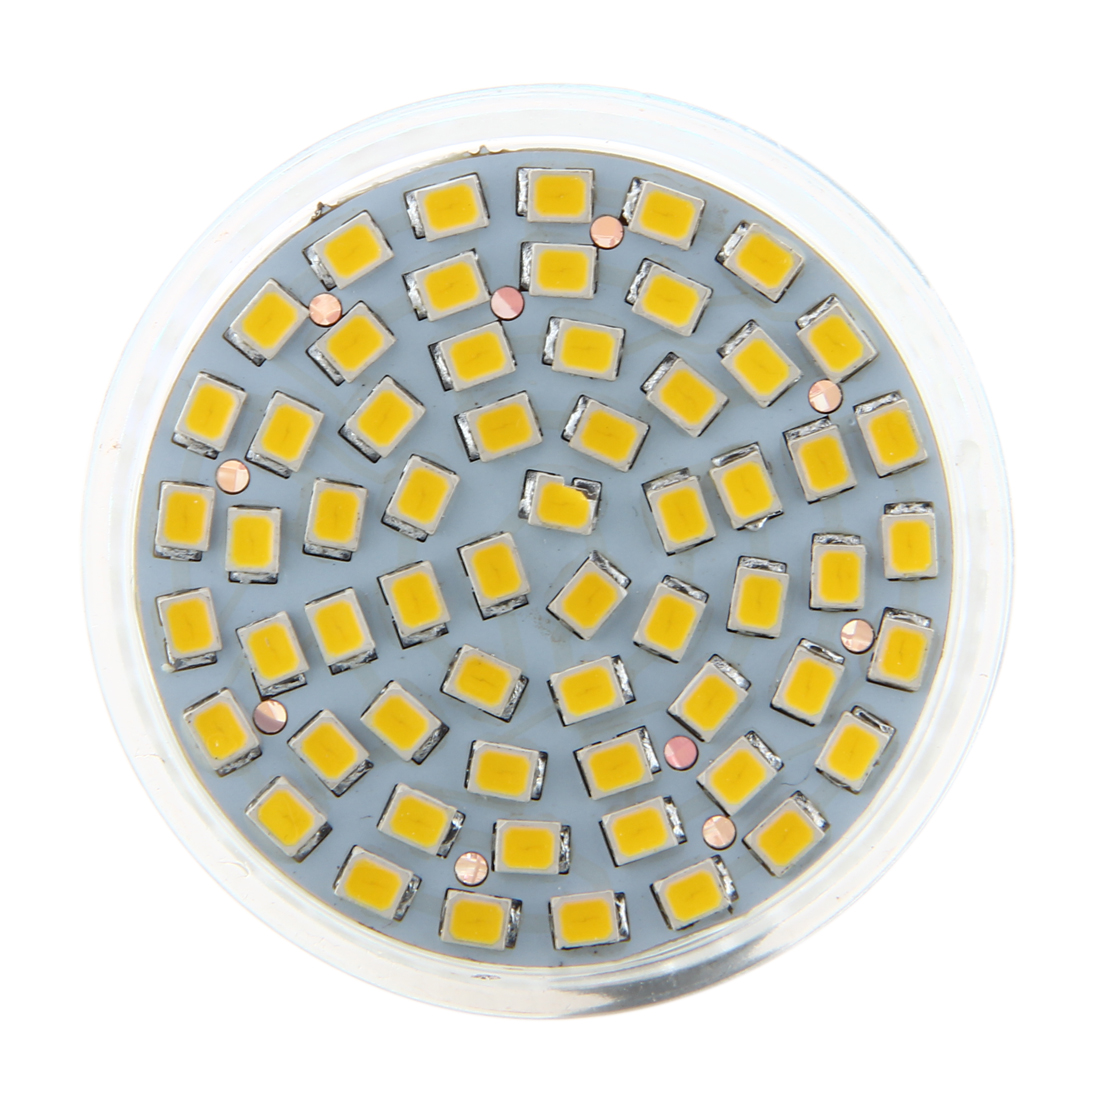 MR16 GU5,3 60 LED 3528 SMD 3W SPOT LIGHT BULB Warm White 12V